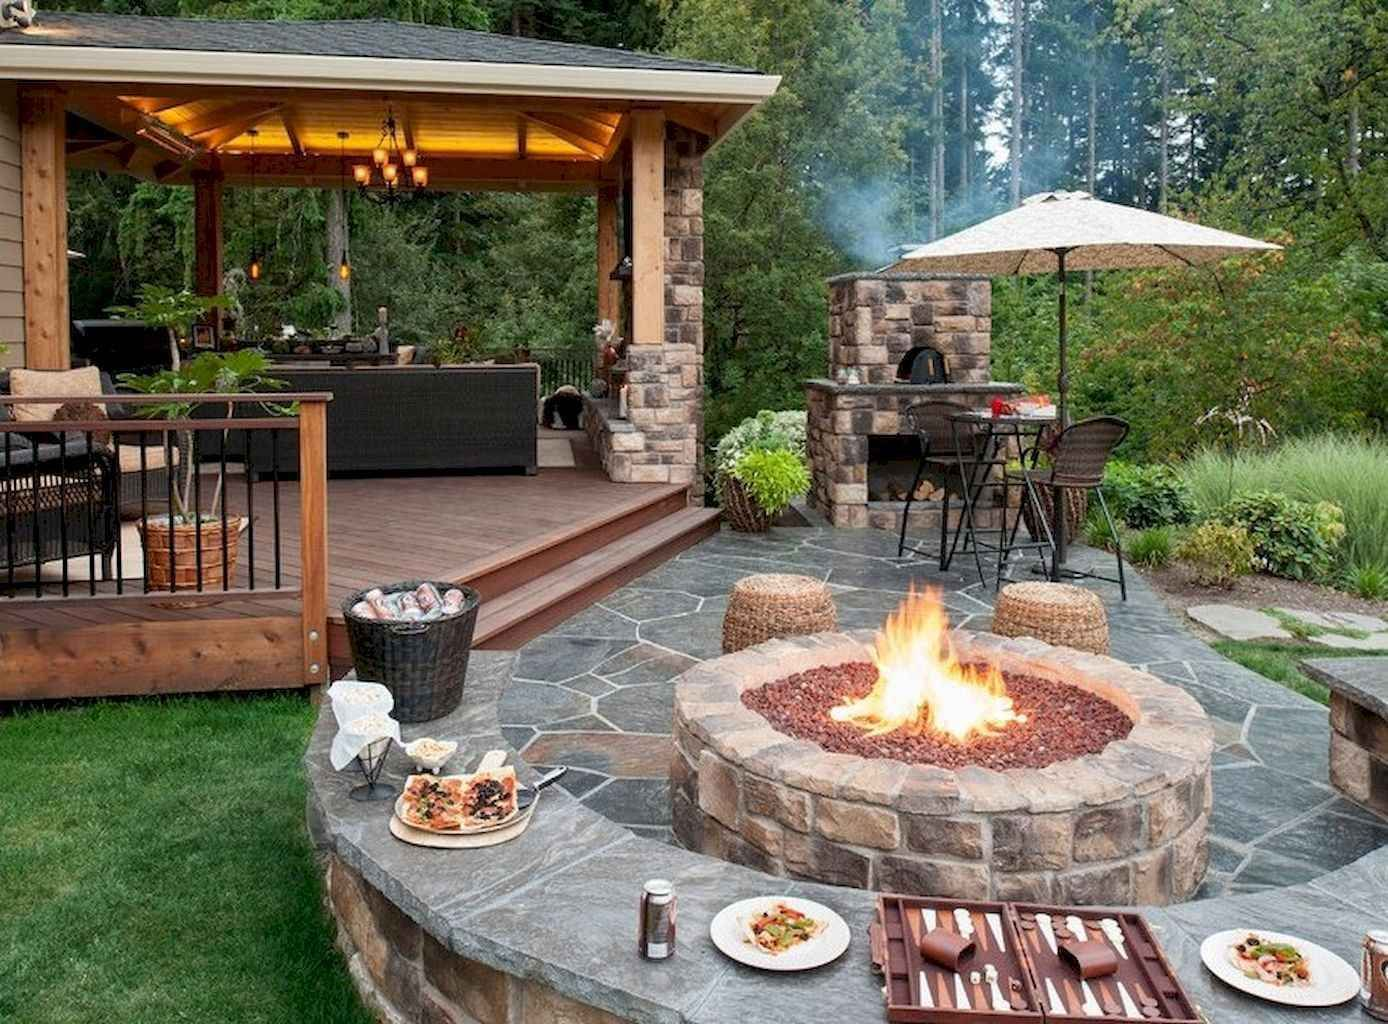 60 Easy Backyard Fire Pit with Cozy Seating Area Ideas ... on Simple Patio Designs With Fire Pit id=36087